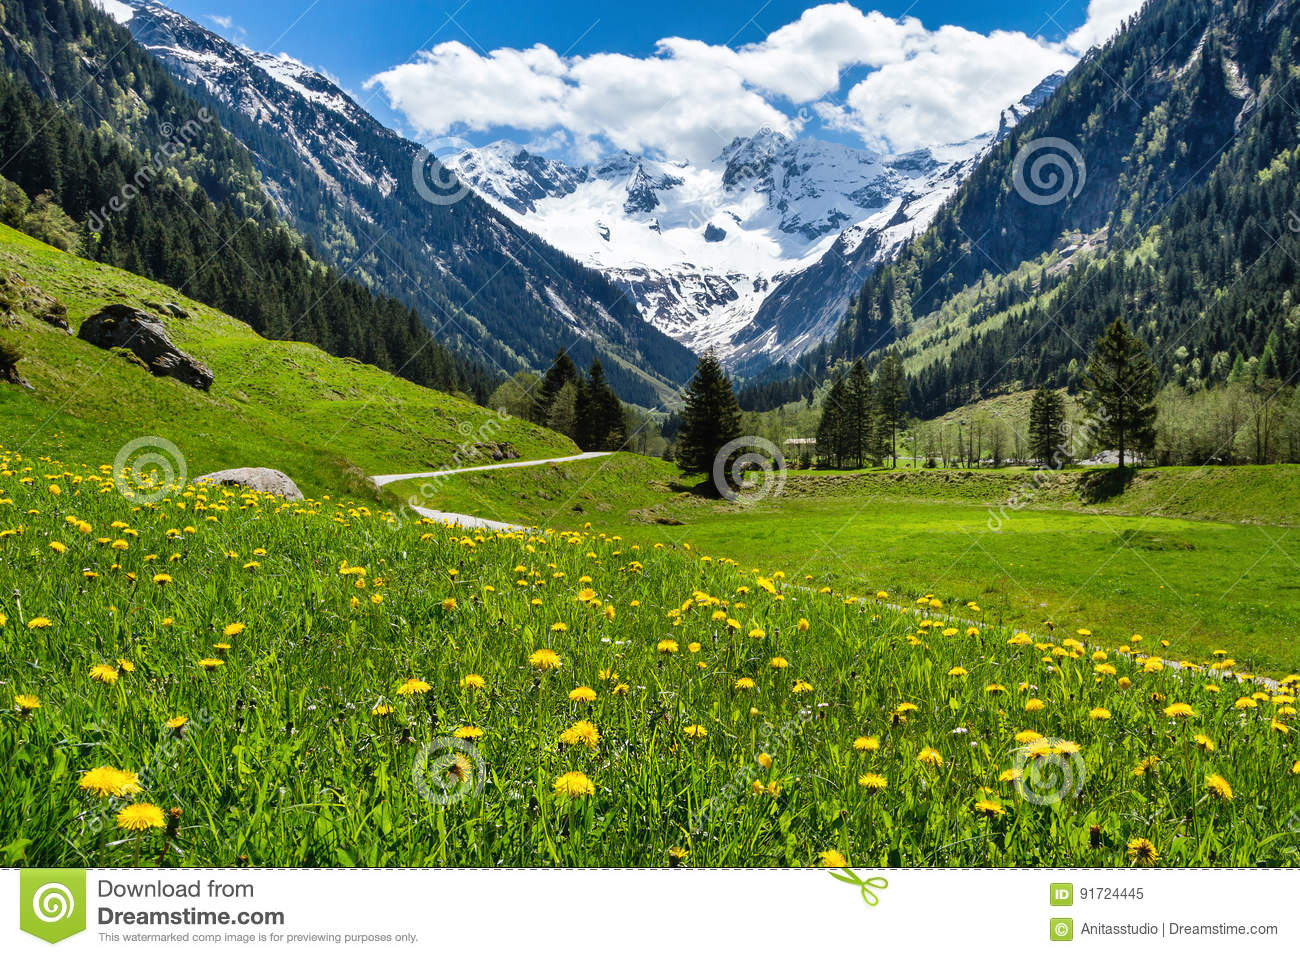 Amazing alpine spring summer landscape with green meadows flowers and snowy peak in the background. Austria, Tirol, Stillup valley